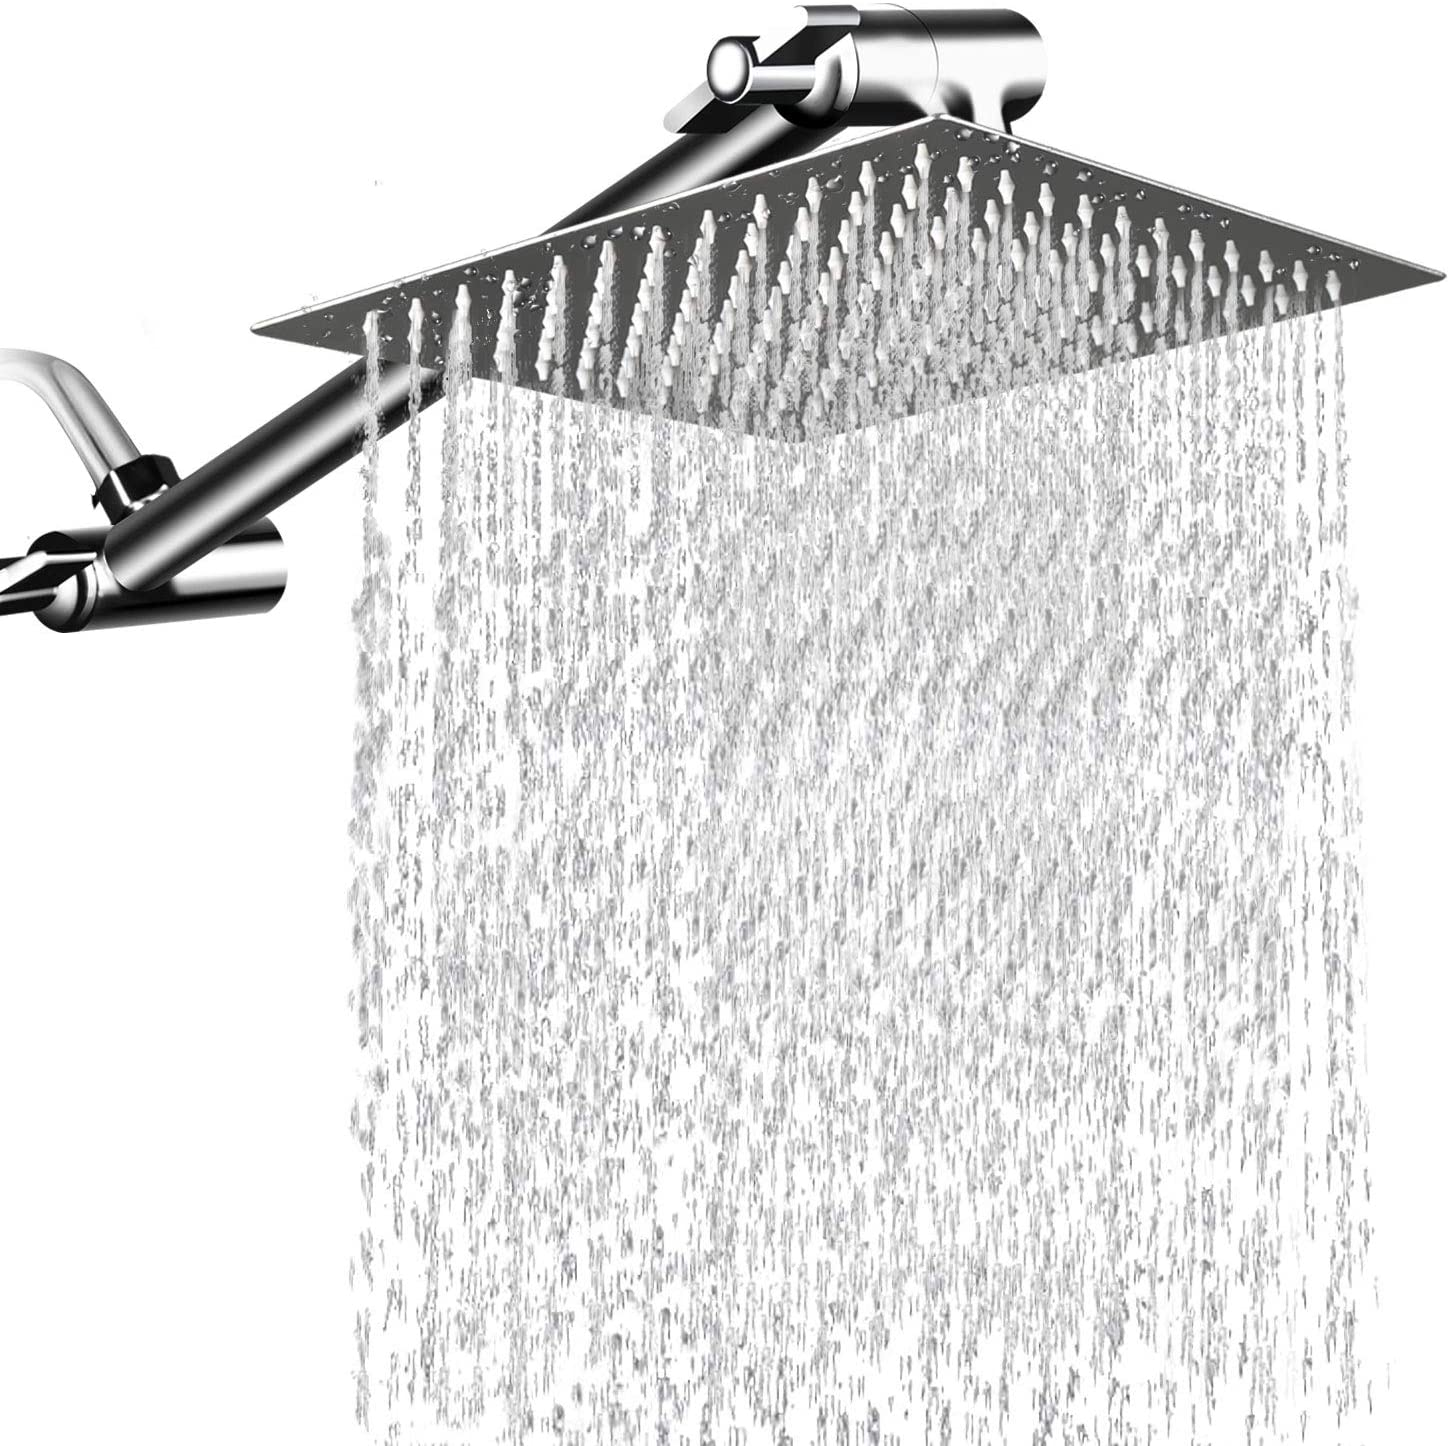 MESUN High Pressure Square Rain Showerhead